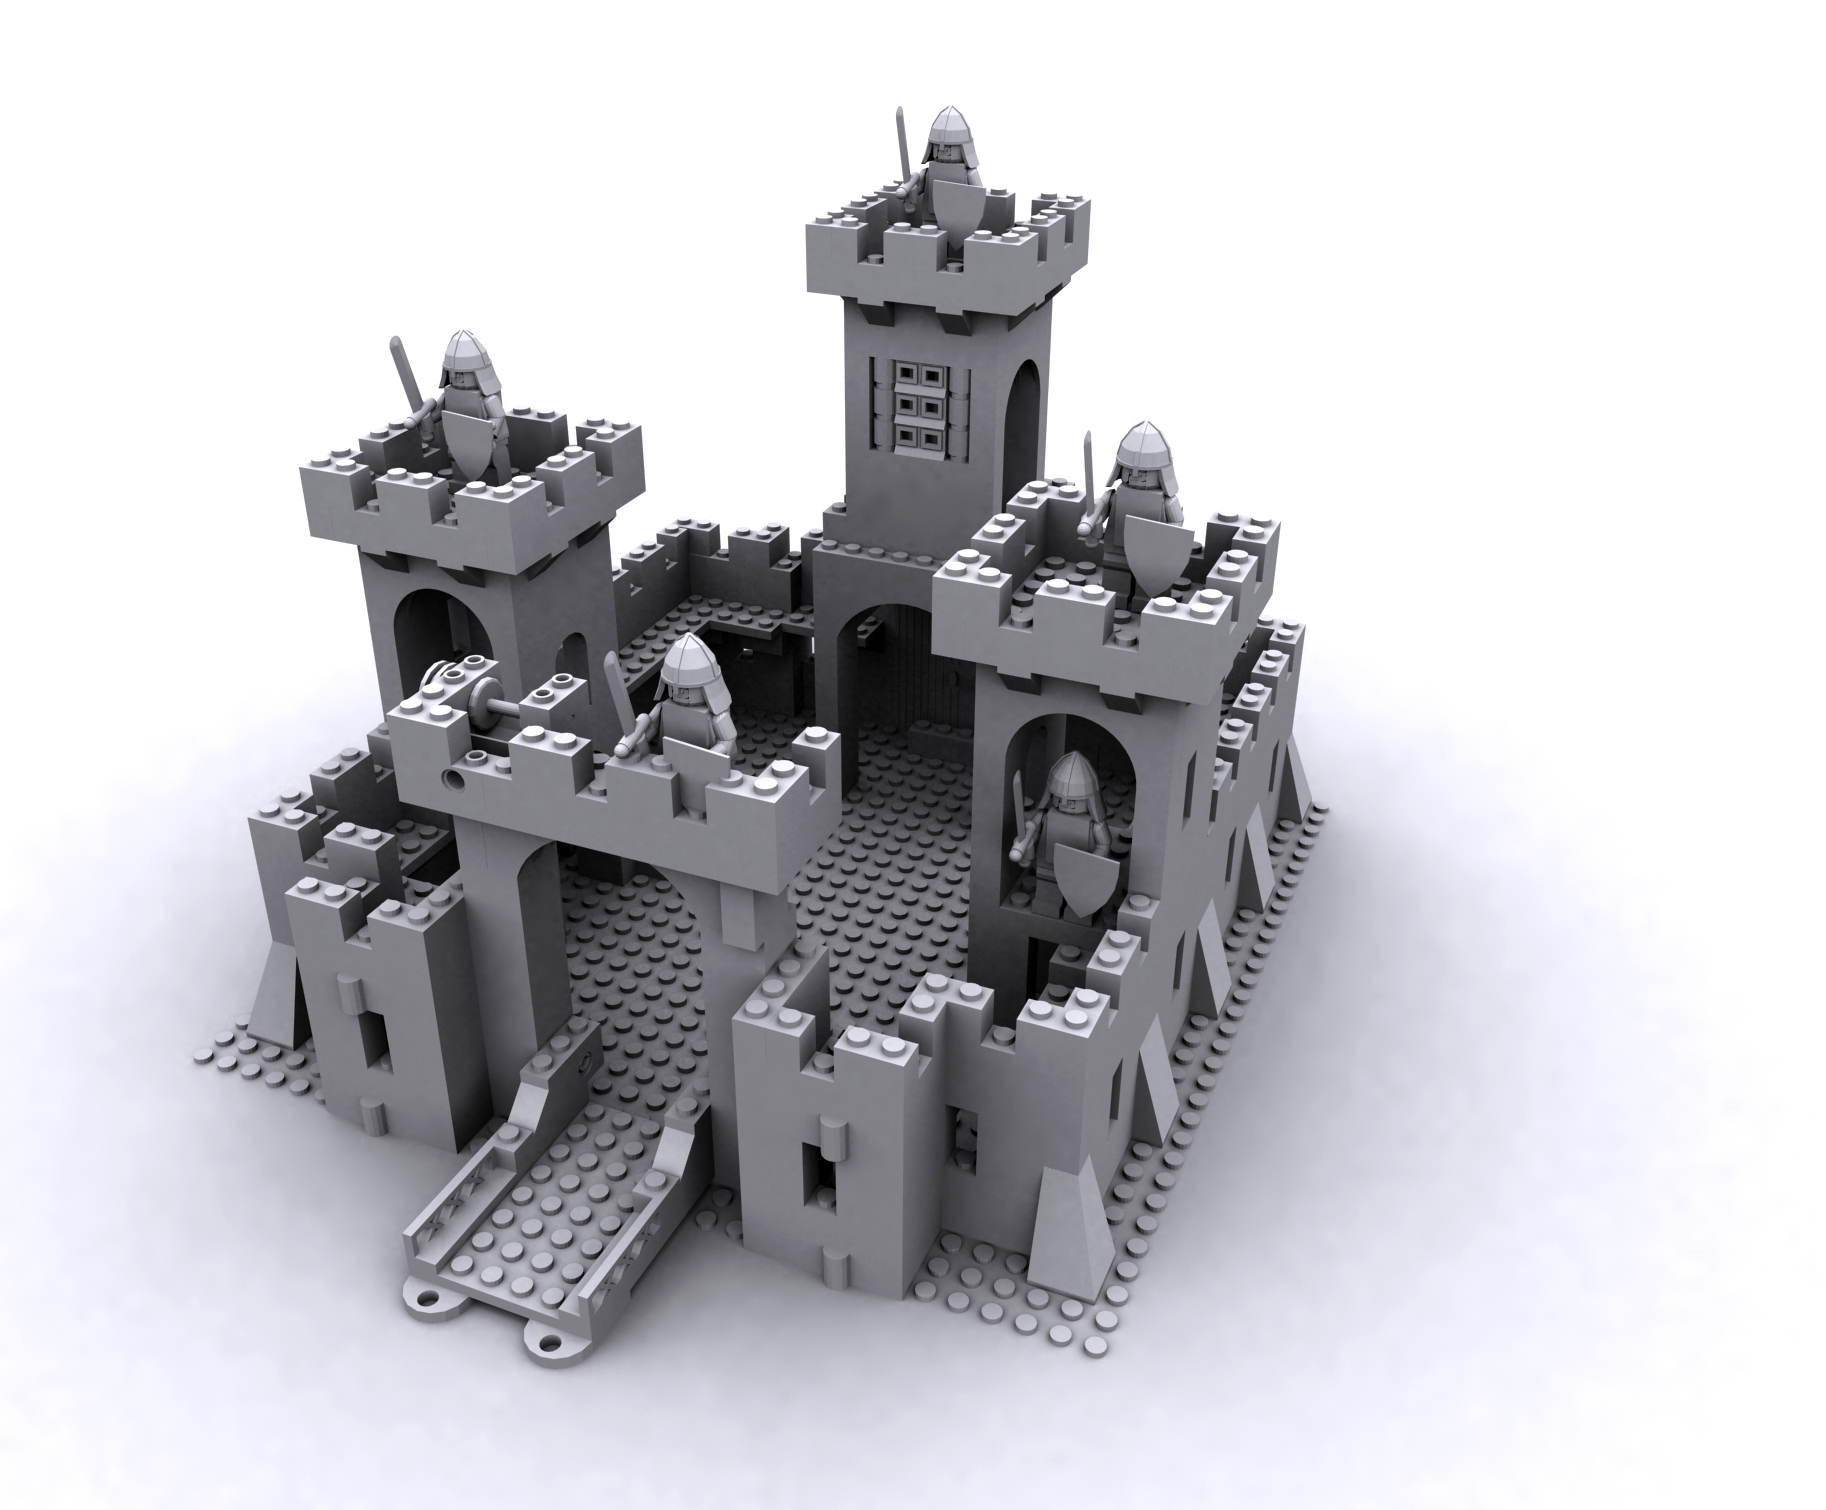 Lego Castle 375 6075 Wip By D100763 On Deviantart